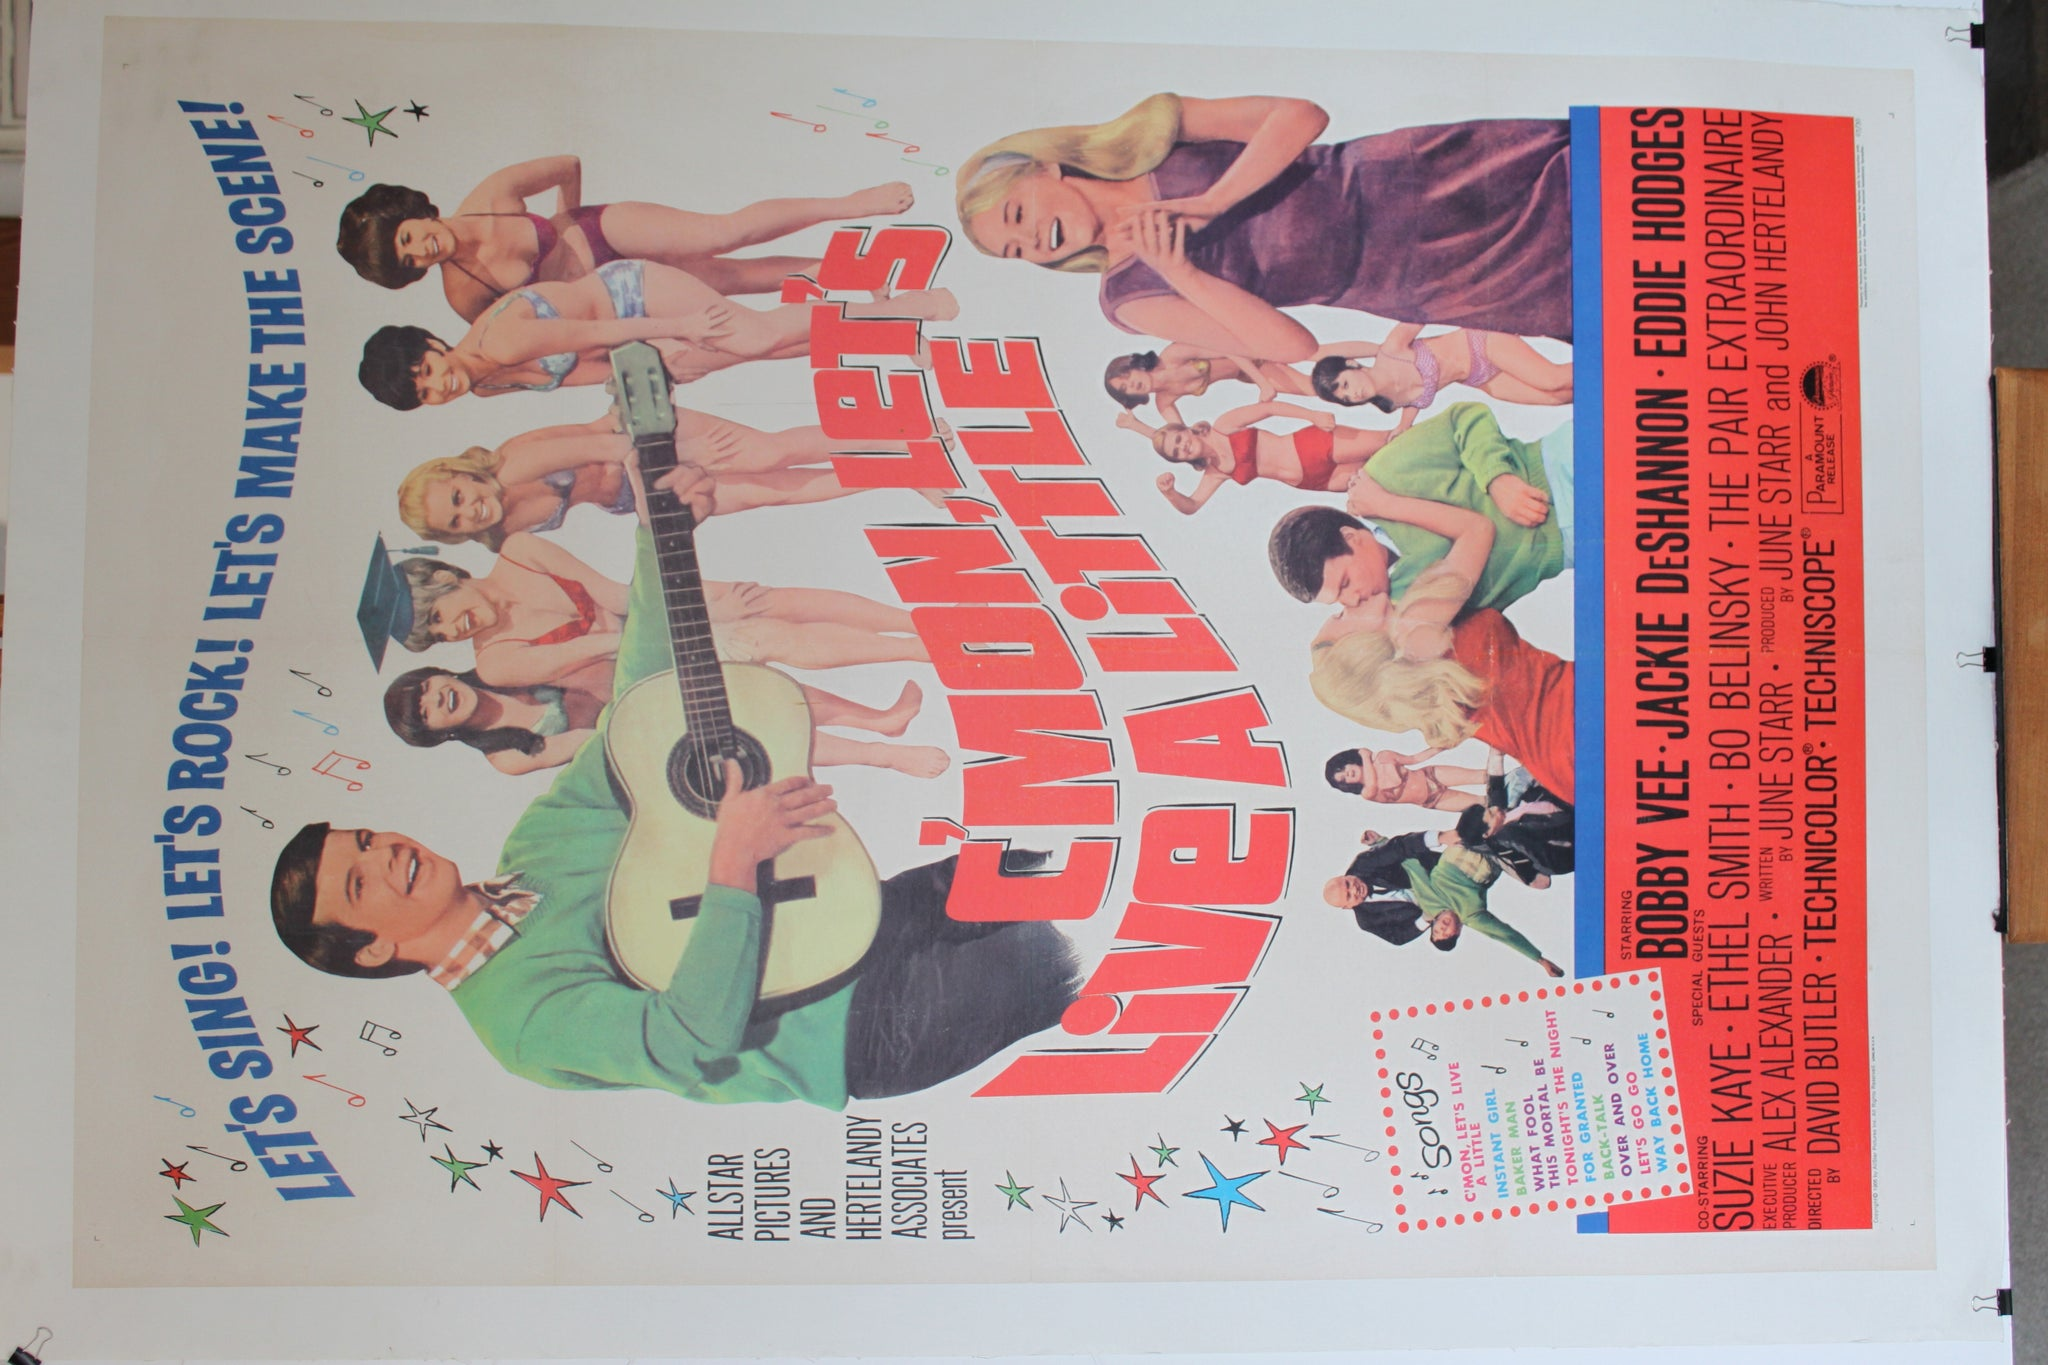 C'Mon Lets Live a Little. Linen Backed Poster. 1967.